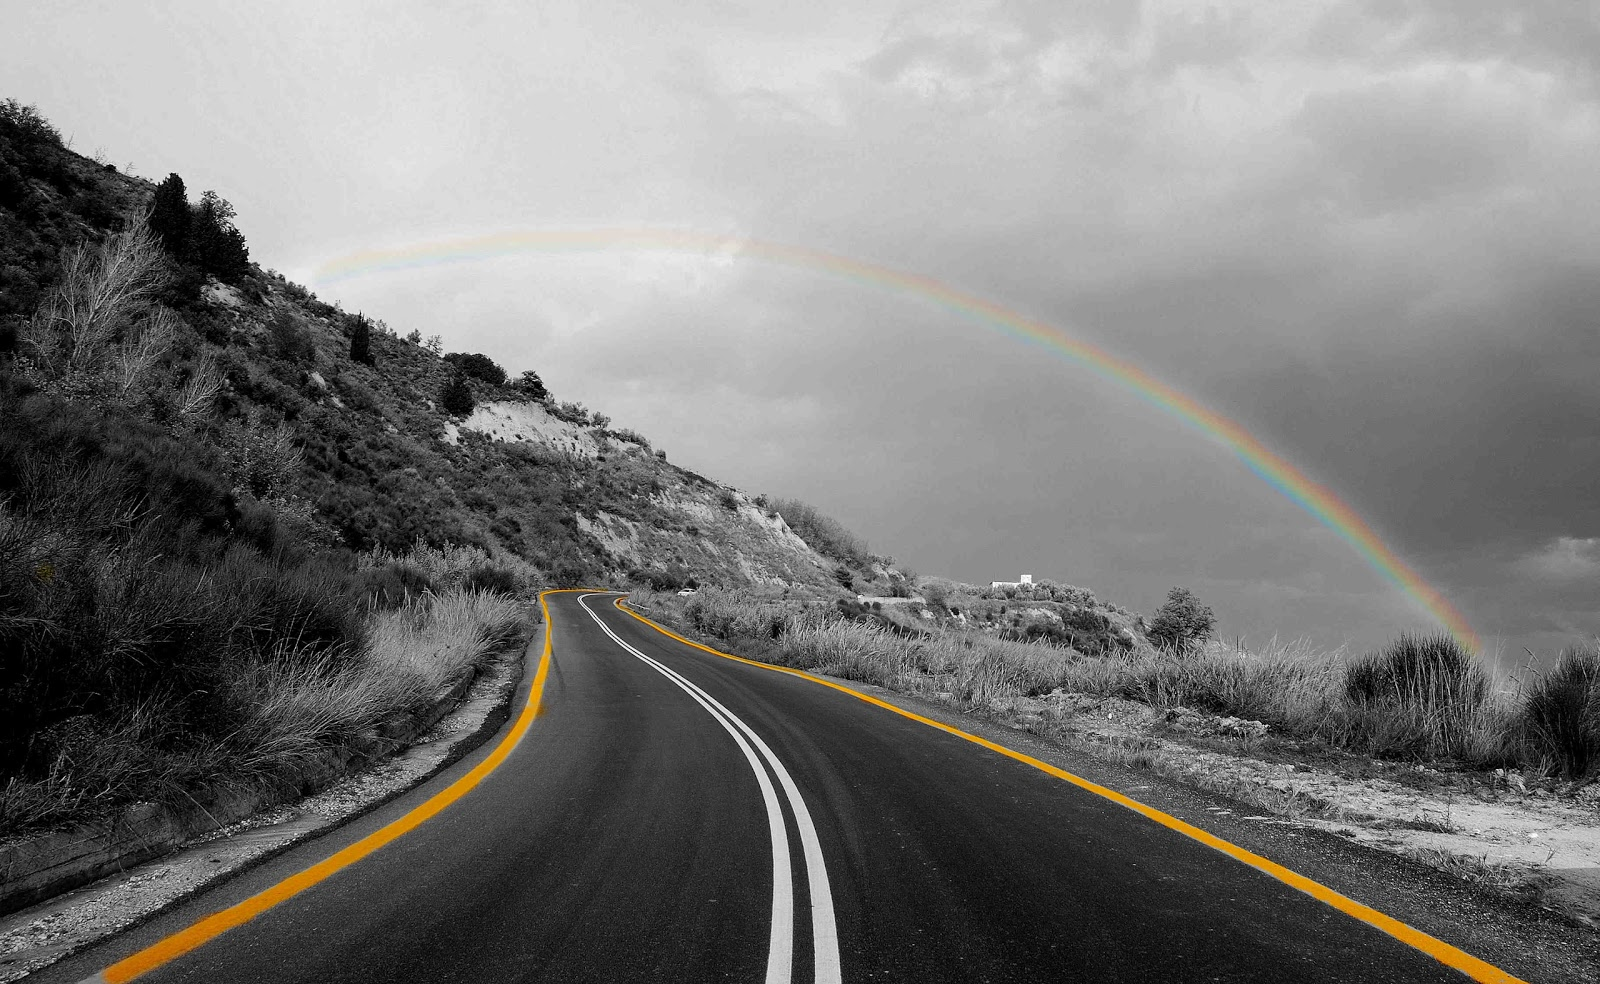 Rainbow and Road Black and white photography with color